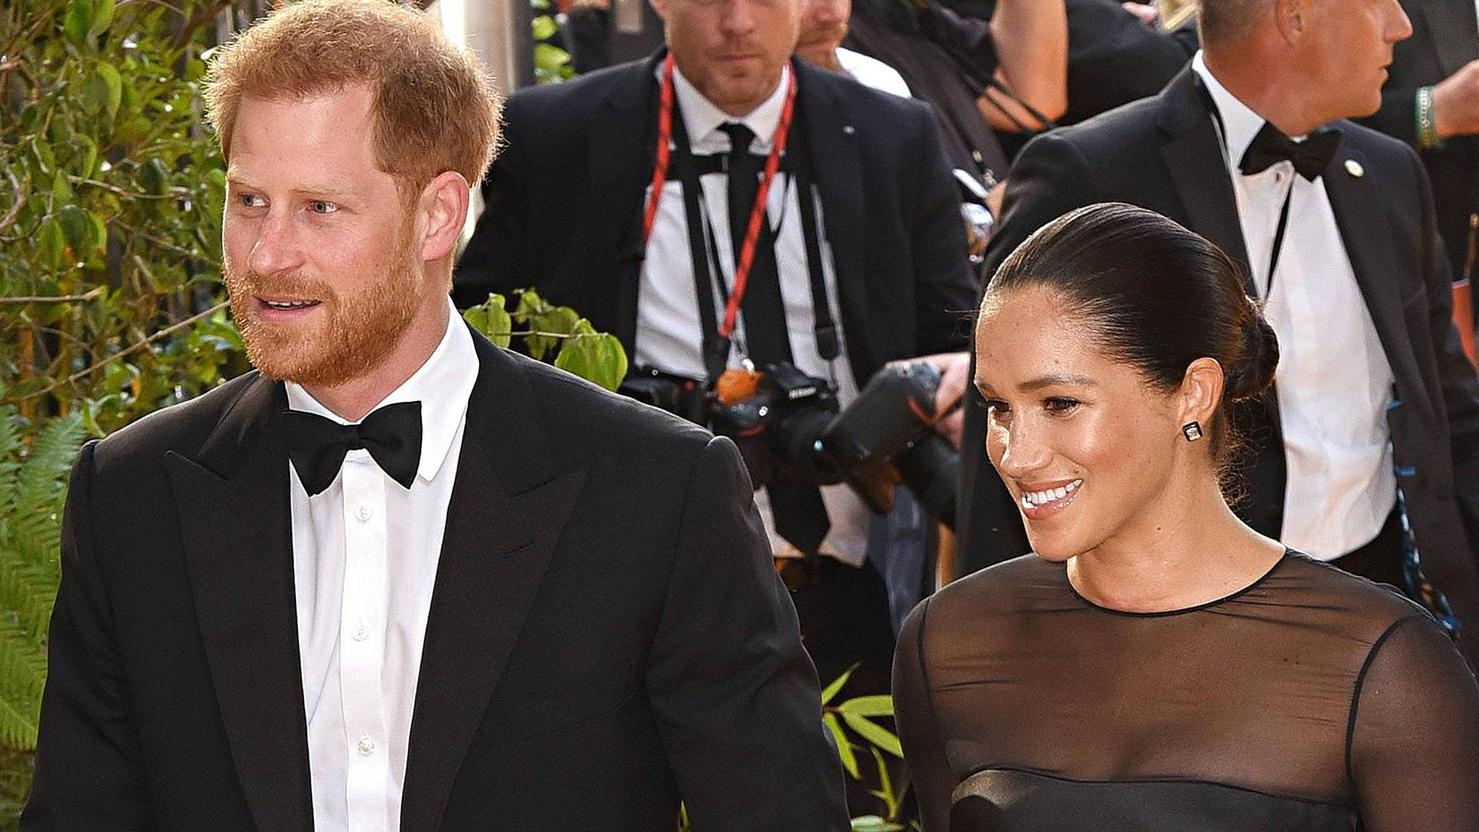 Harry And Meghan Show An Unpublished Image Of Archie